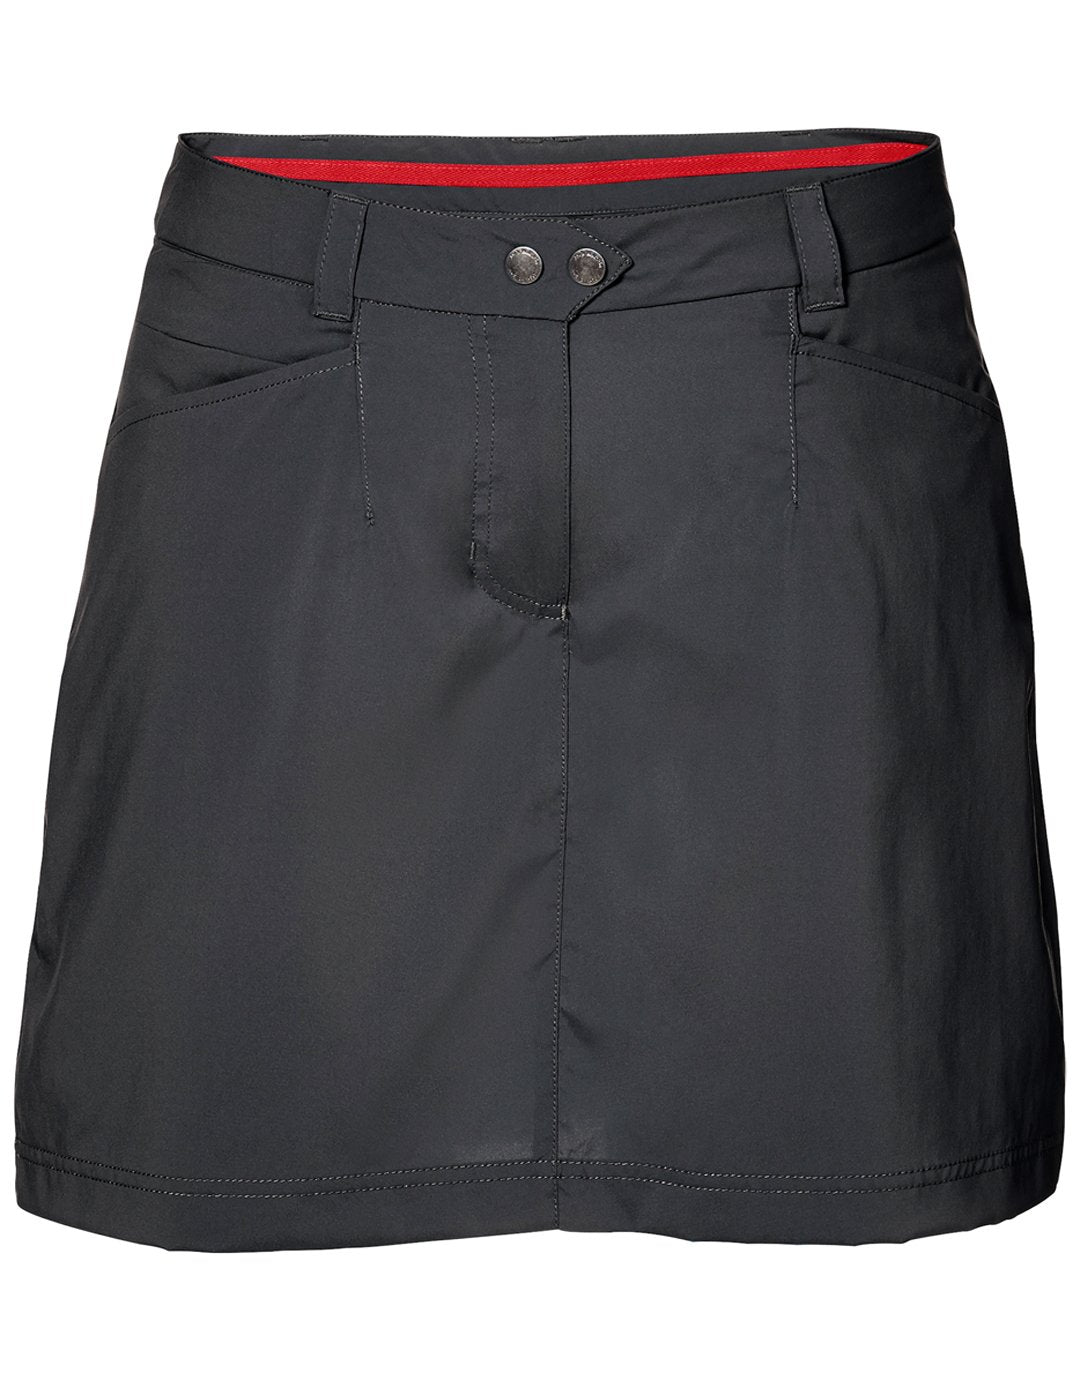 Womens Sonora Skort - Phantom - UK Size 14 Black